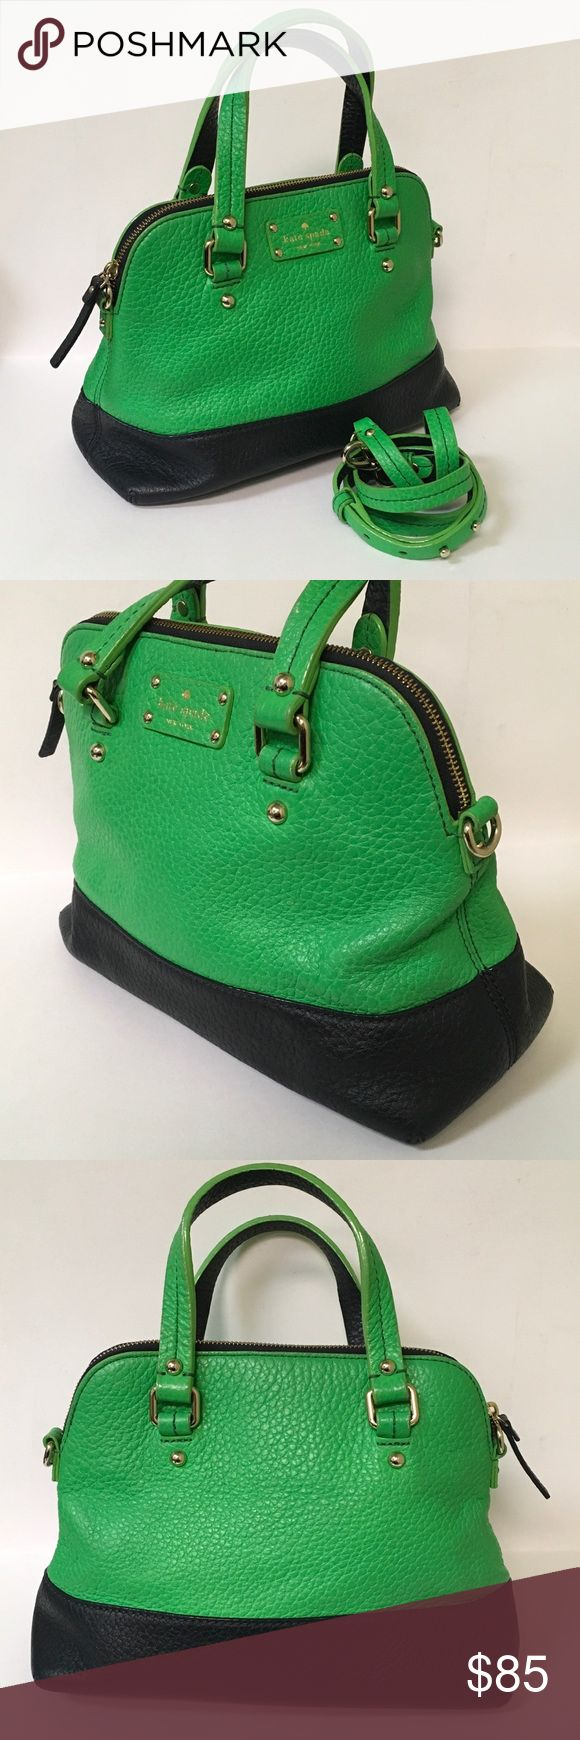 Kate Spade Grove Court Maise Green & Navy Bag Up for sale is a preowned Kate Spade Grove Court Maise Green & Navy Bag in good condition with no major wear but showing signs of prior use. The Leather has relaxed a little bit. The handles have a little bit of wear such as cracking in the paint.  They are still very sturdy and the wear is not very noticeable. The interior has not rips but has light staining.  Overall the bag is in great shape with a lot of life to be had still.  Included is the…